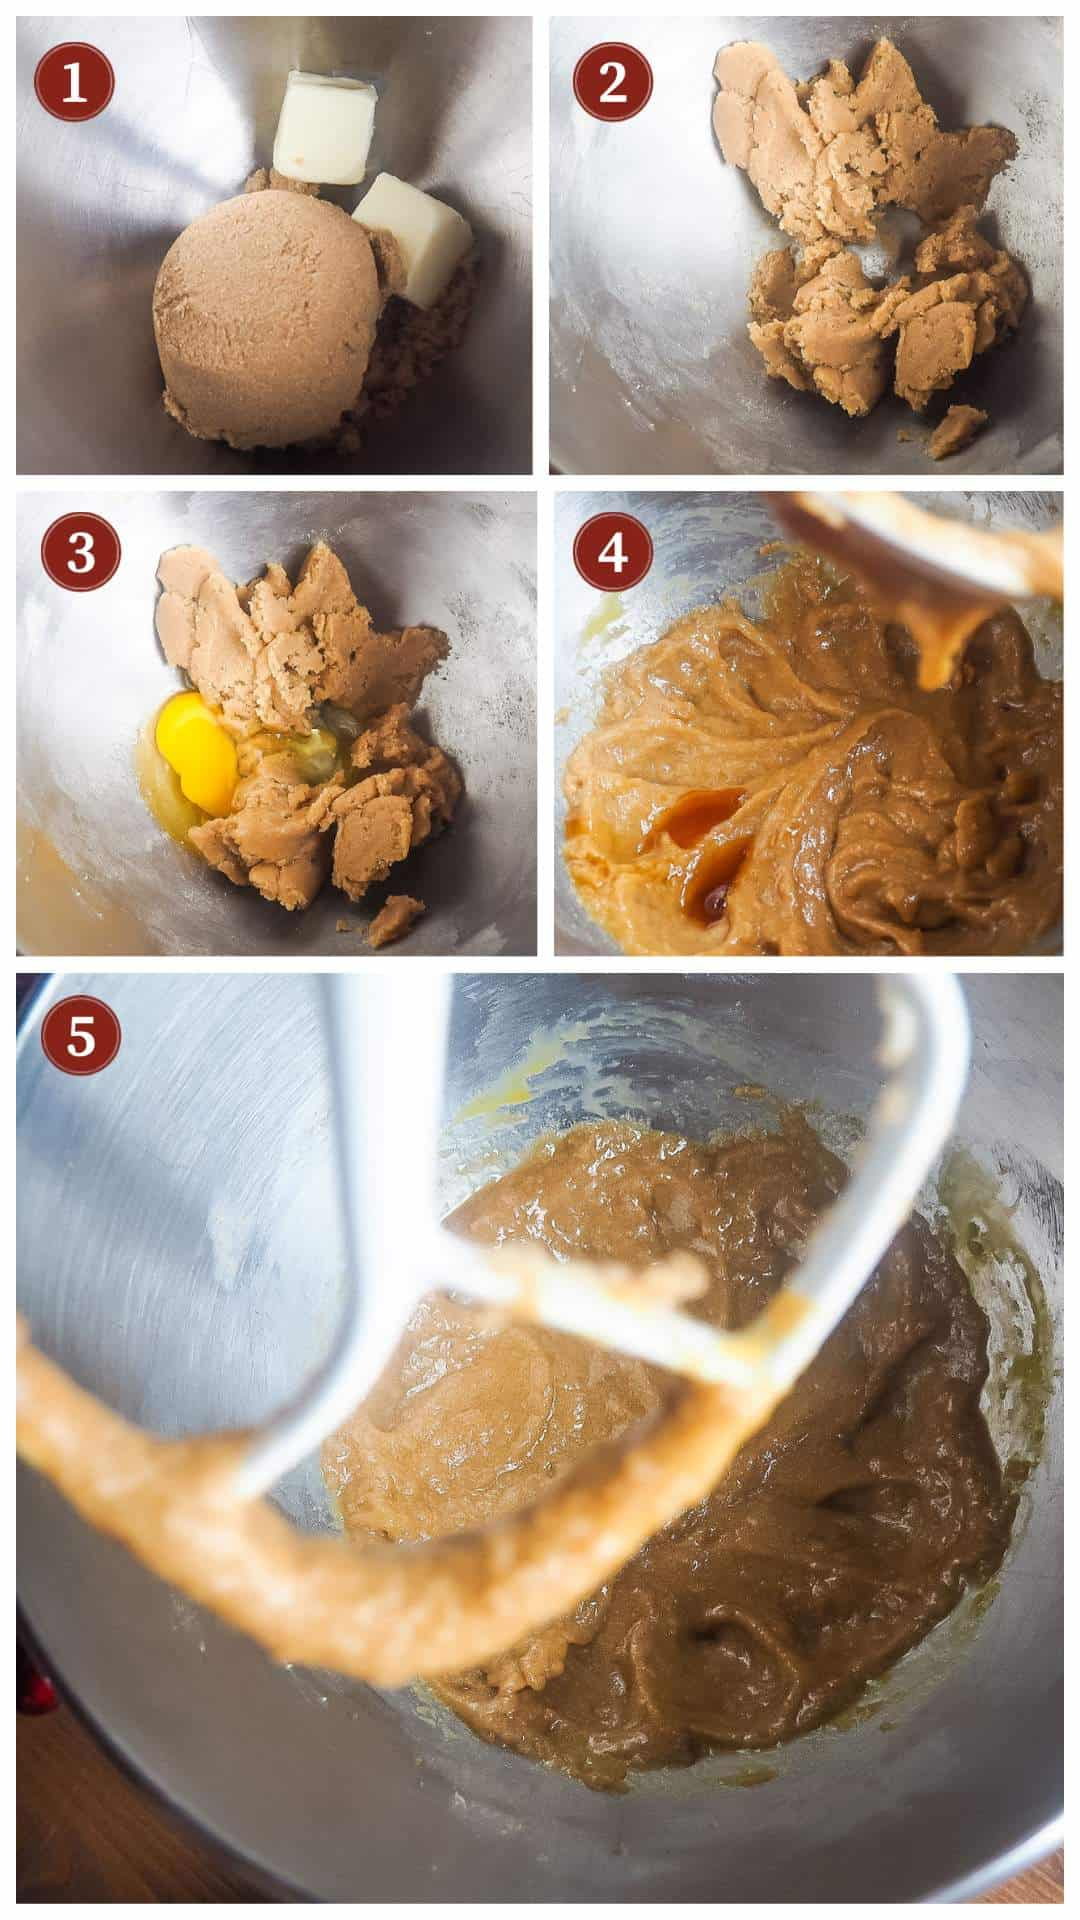 A collage of images showing the process of making cranberry orange muffins, steps 1 - 5.